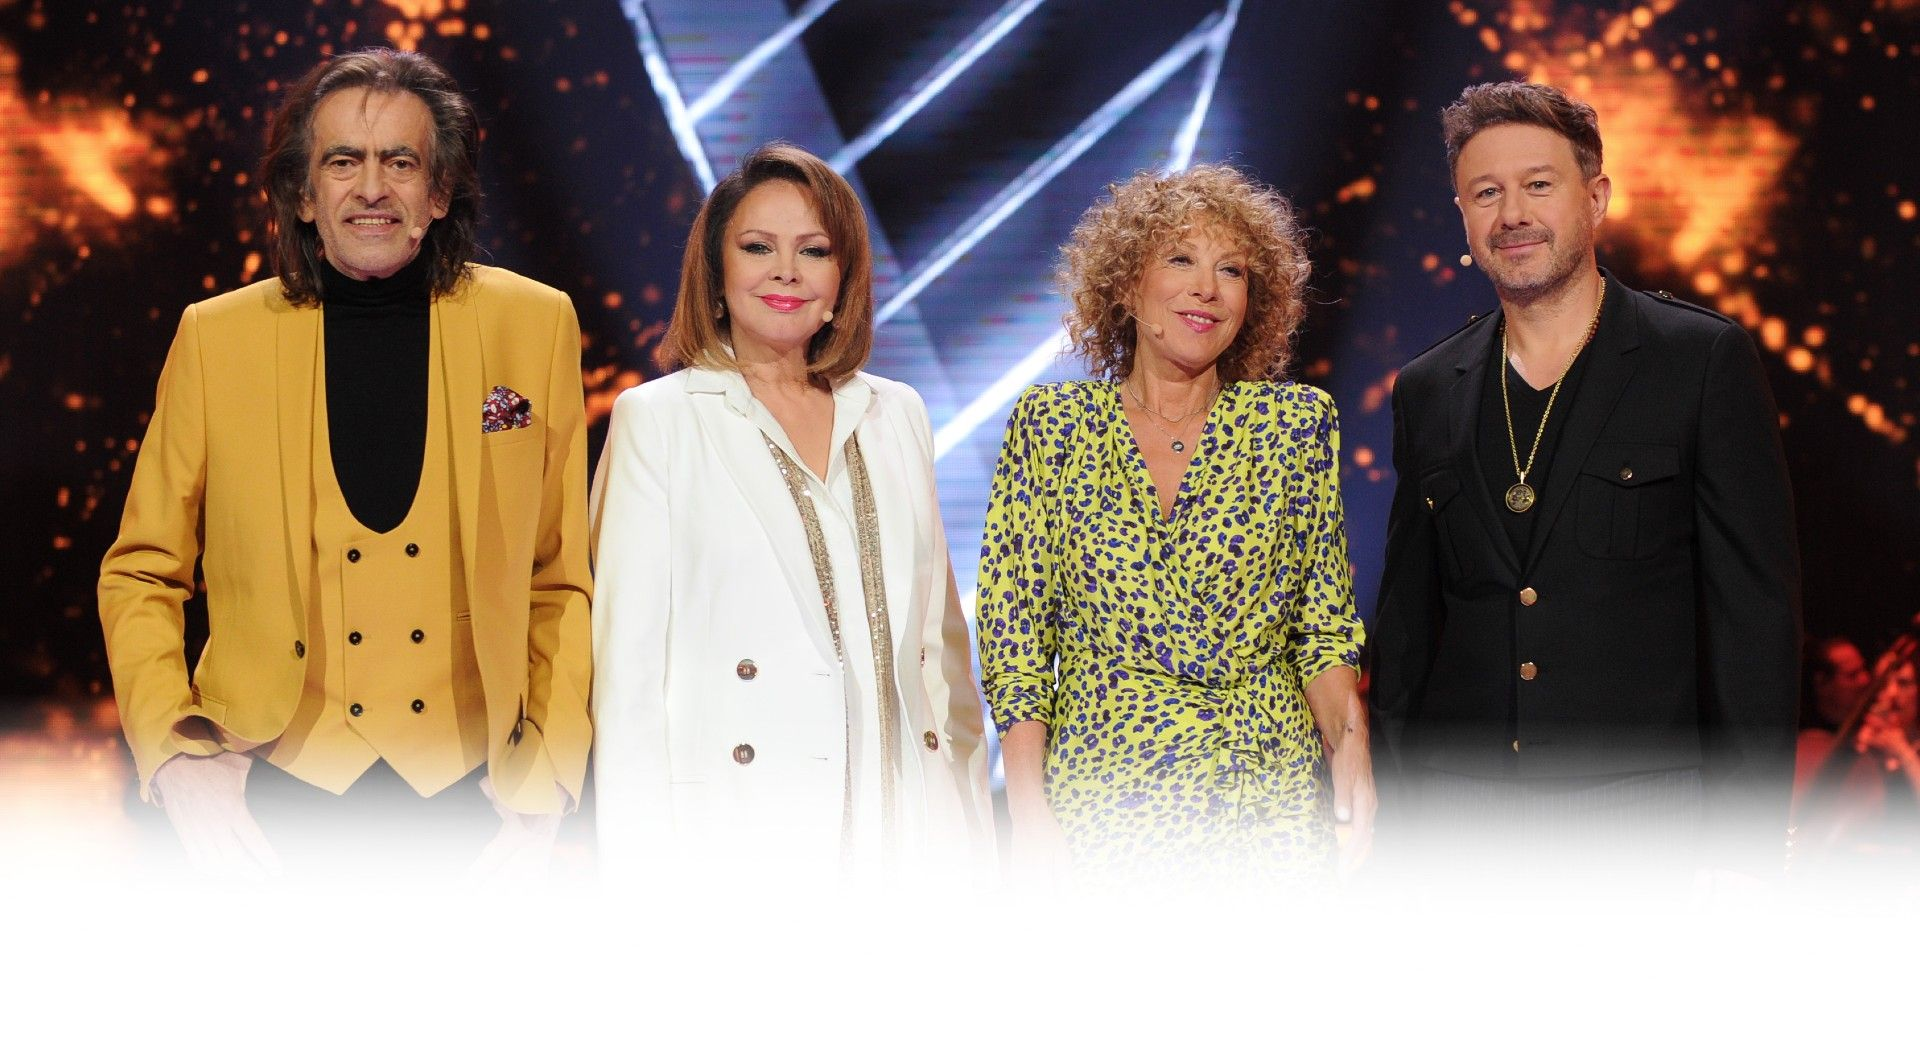 The Voice Senior - The Voice Senior